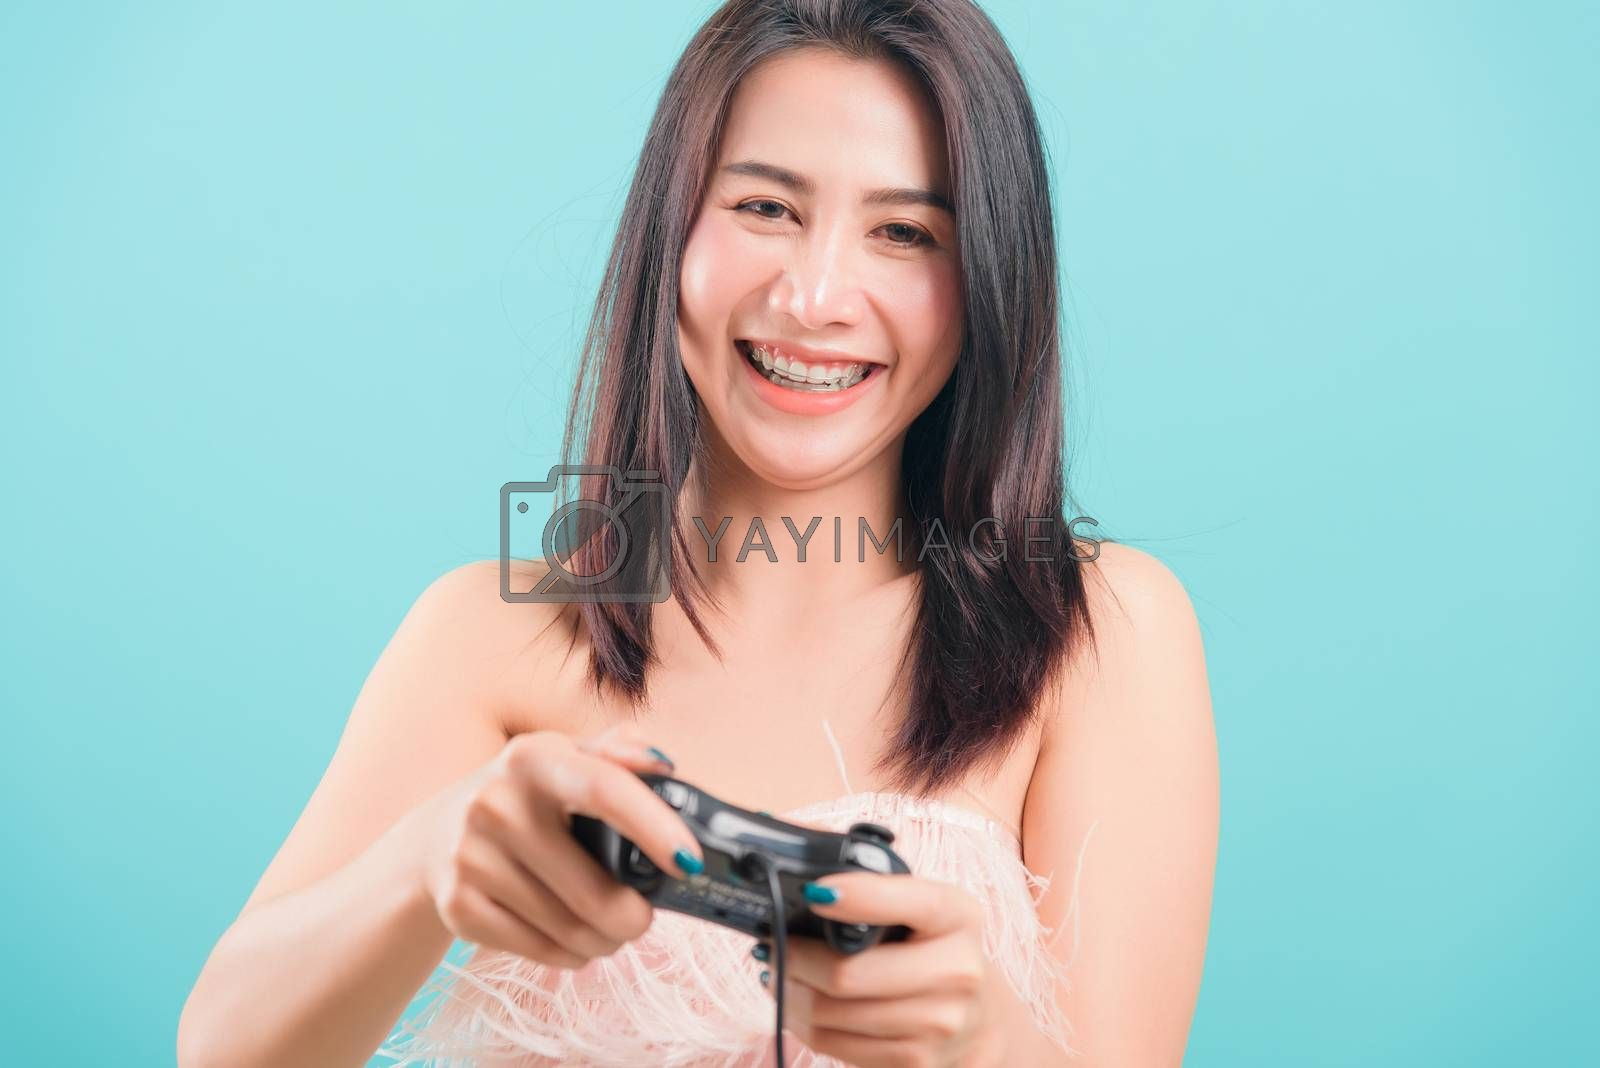 Asian happy portrait beautiful young woman standing smile lifestyle games technology her holding joystick game playing on-hands on blue background with copy space for text